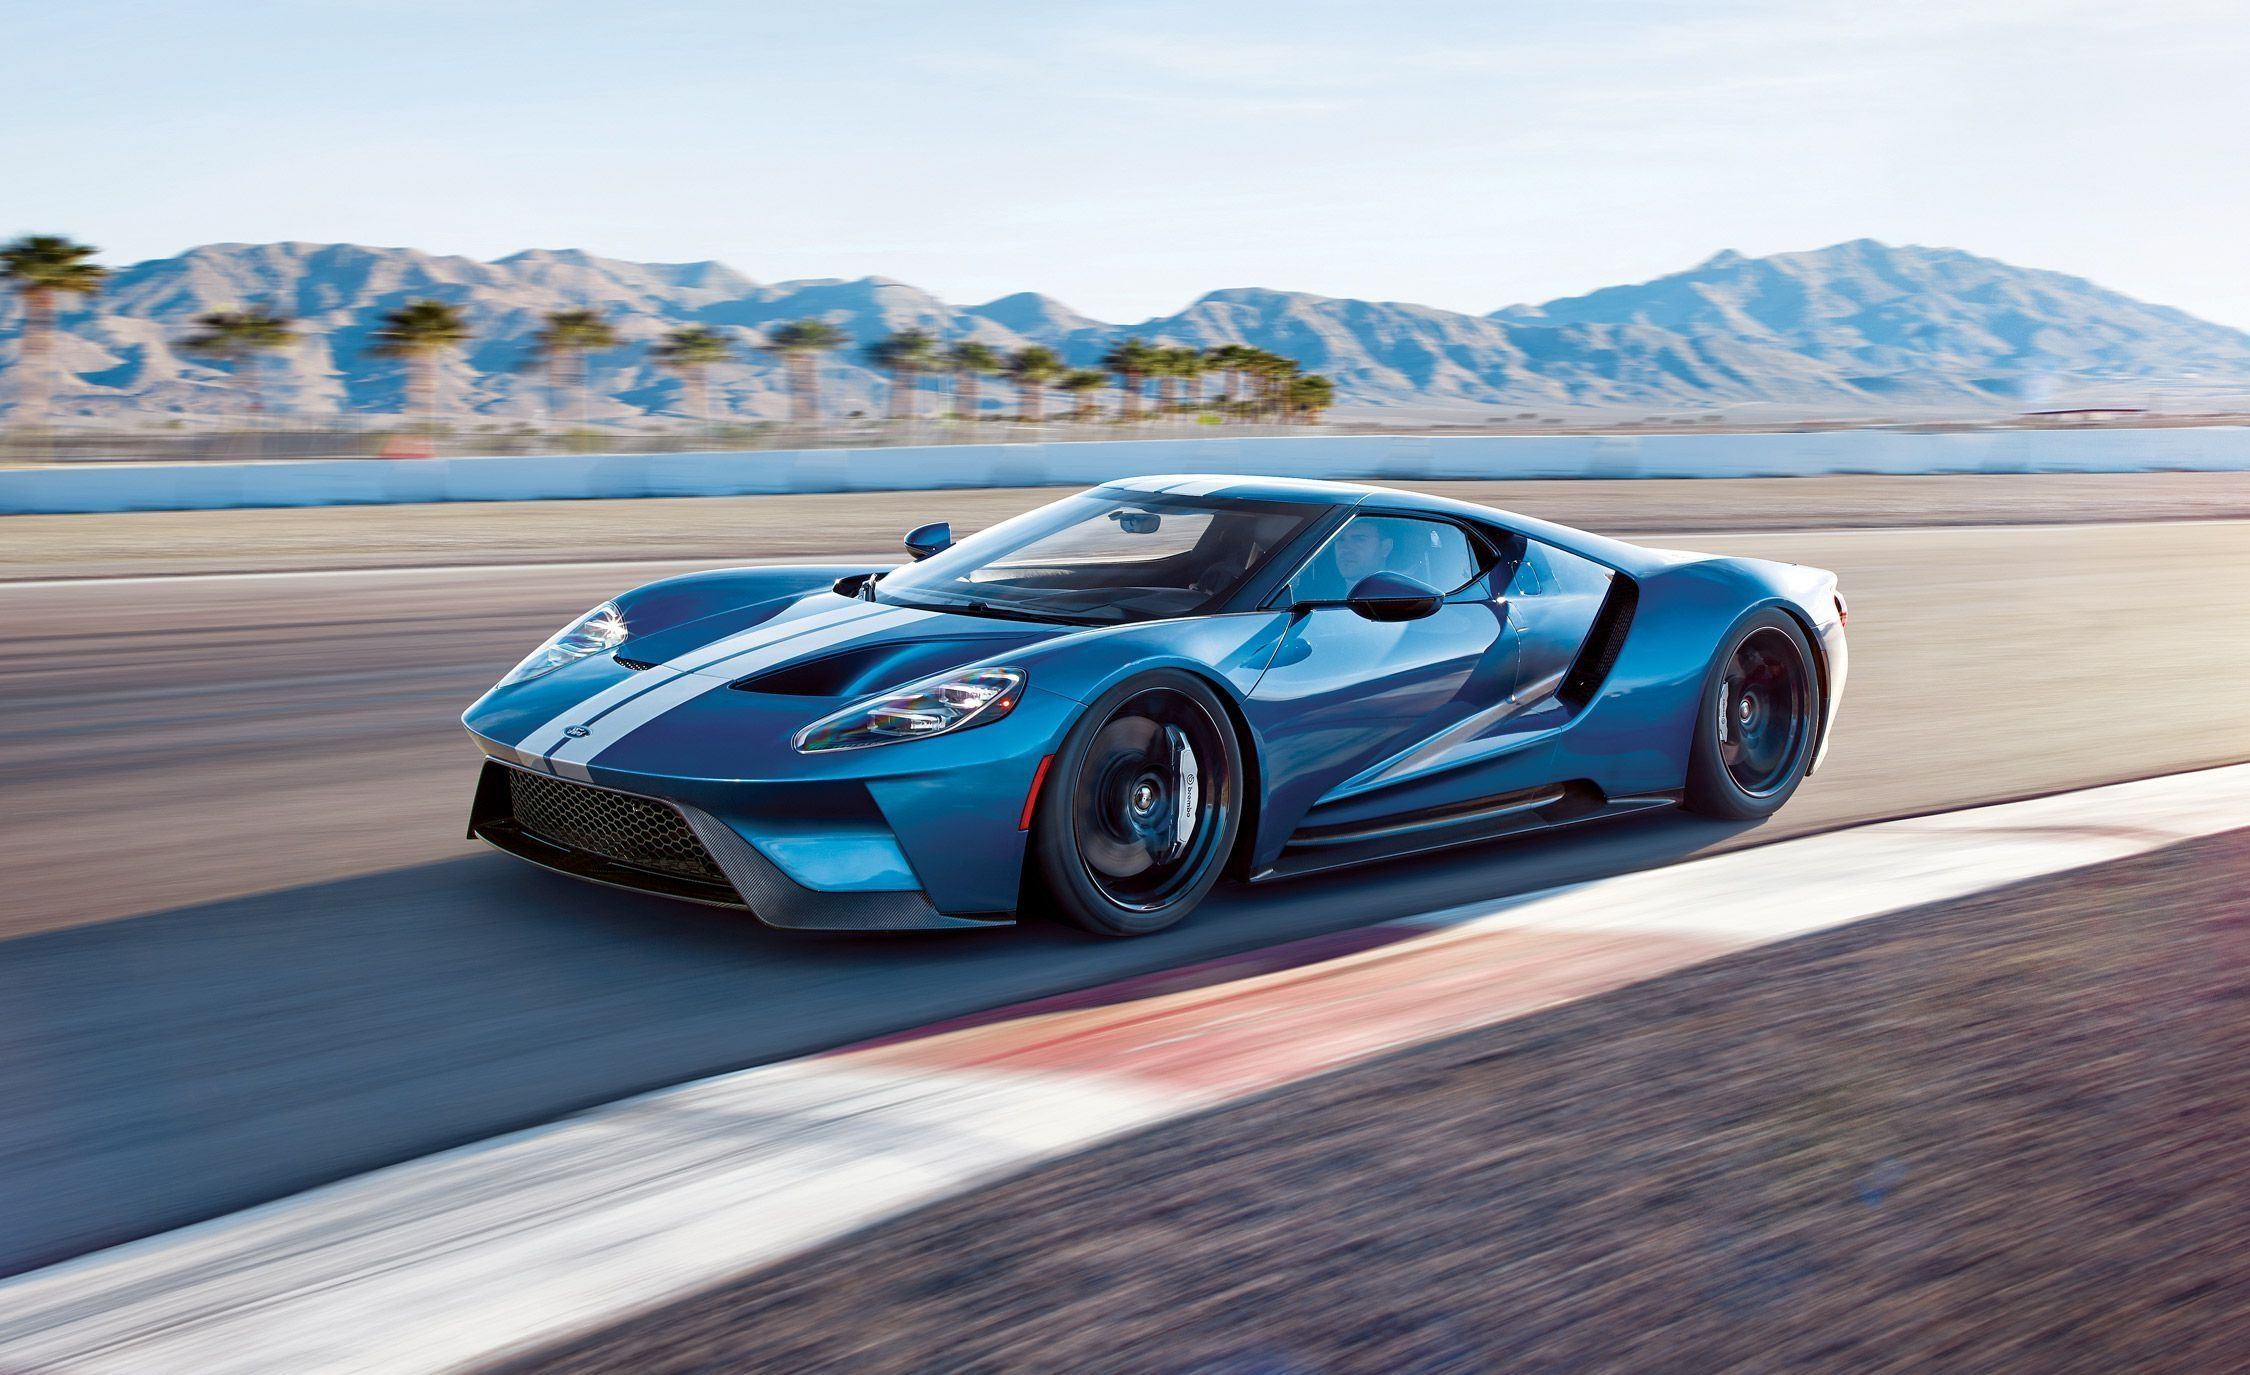 The 2018 Ford Gt40 Concept Car Price 2019 Ford Gt Ford Gt